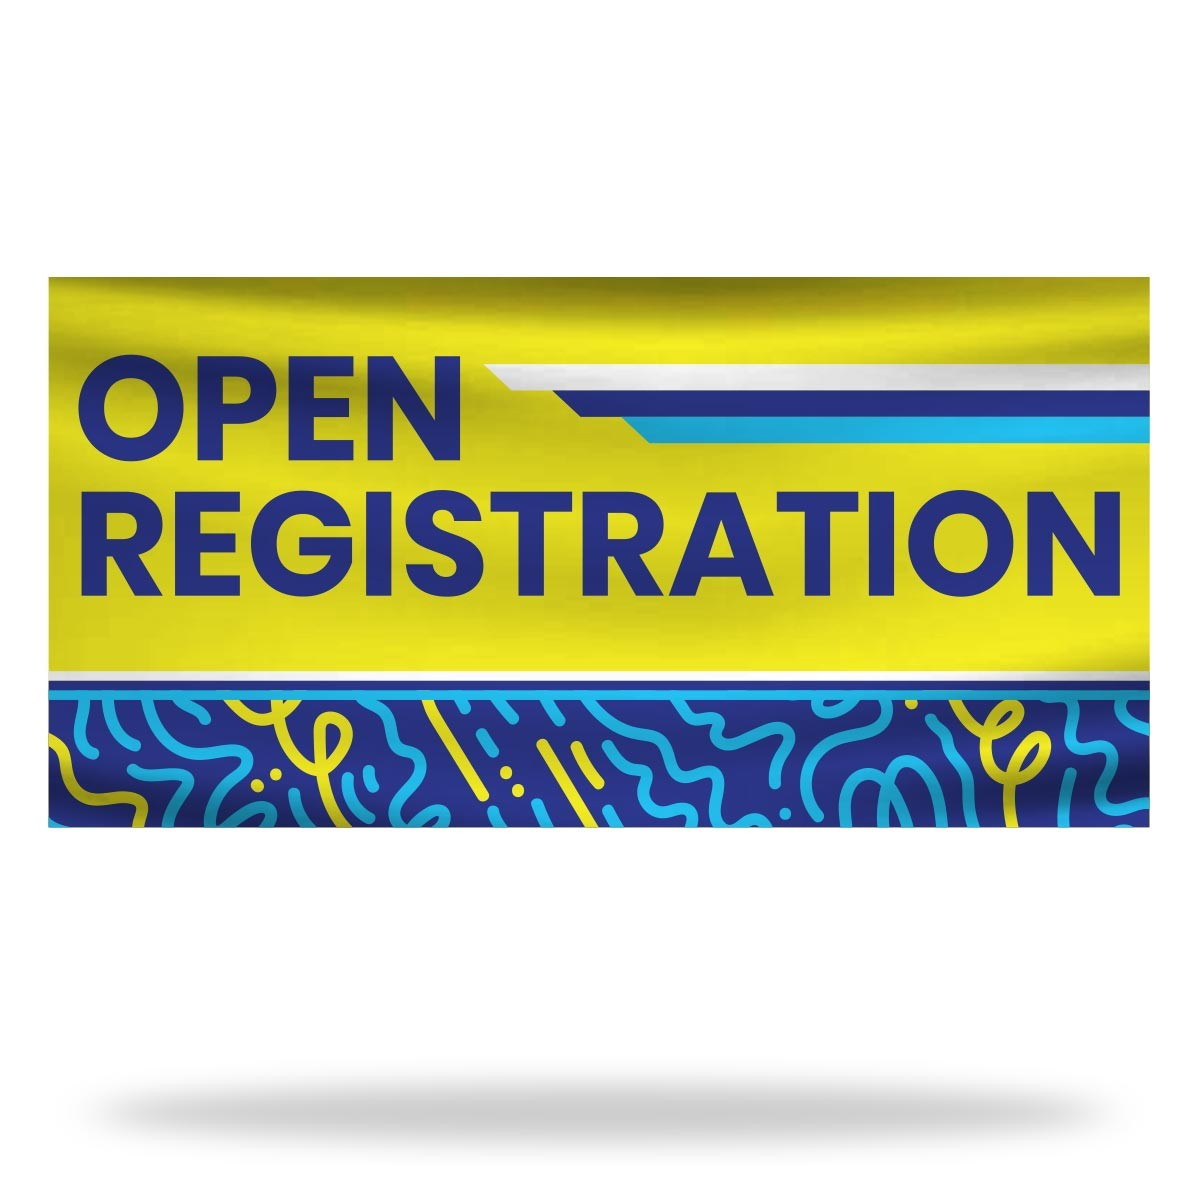 Open Registration Flags & Banners Design 01